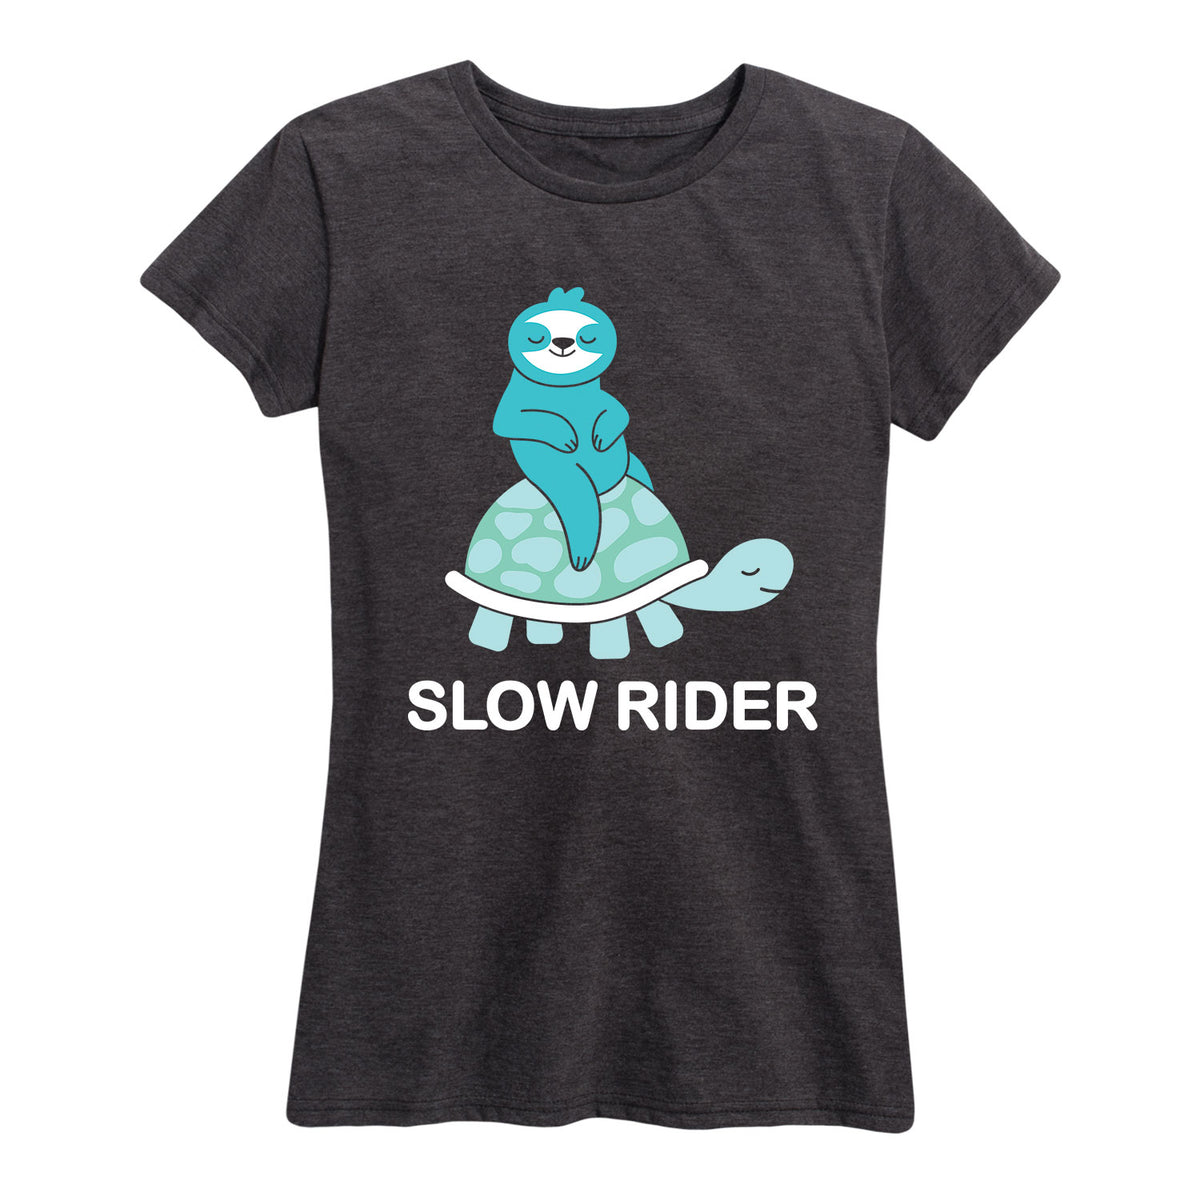 Slow Rider Sloth And Turtle - Women's Short Sleeve T-Shirt